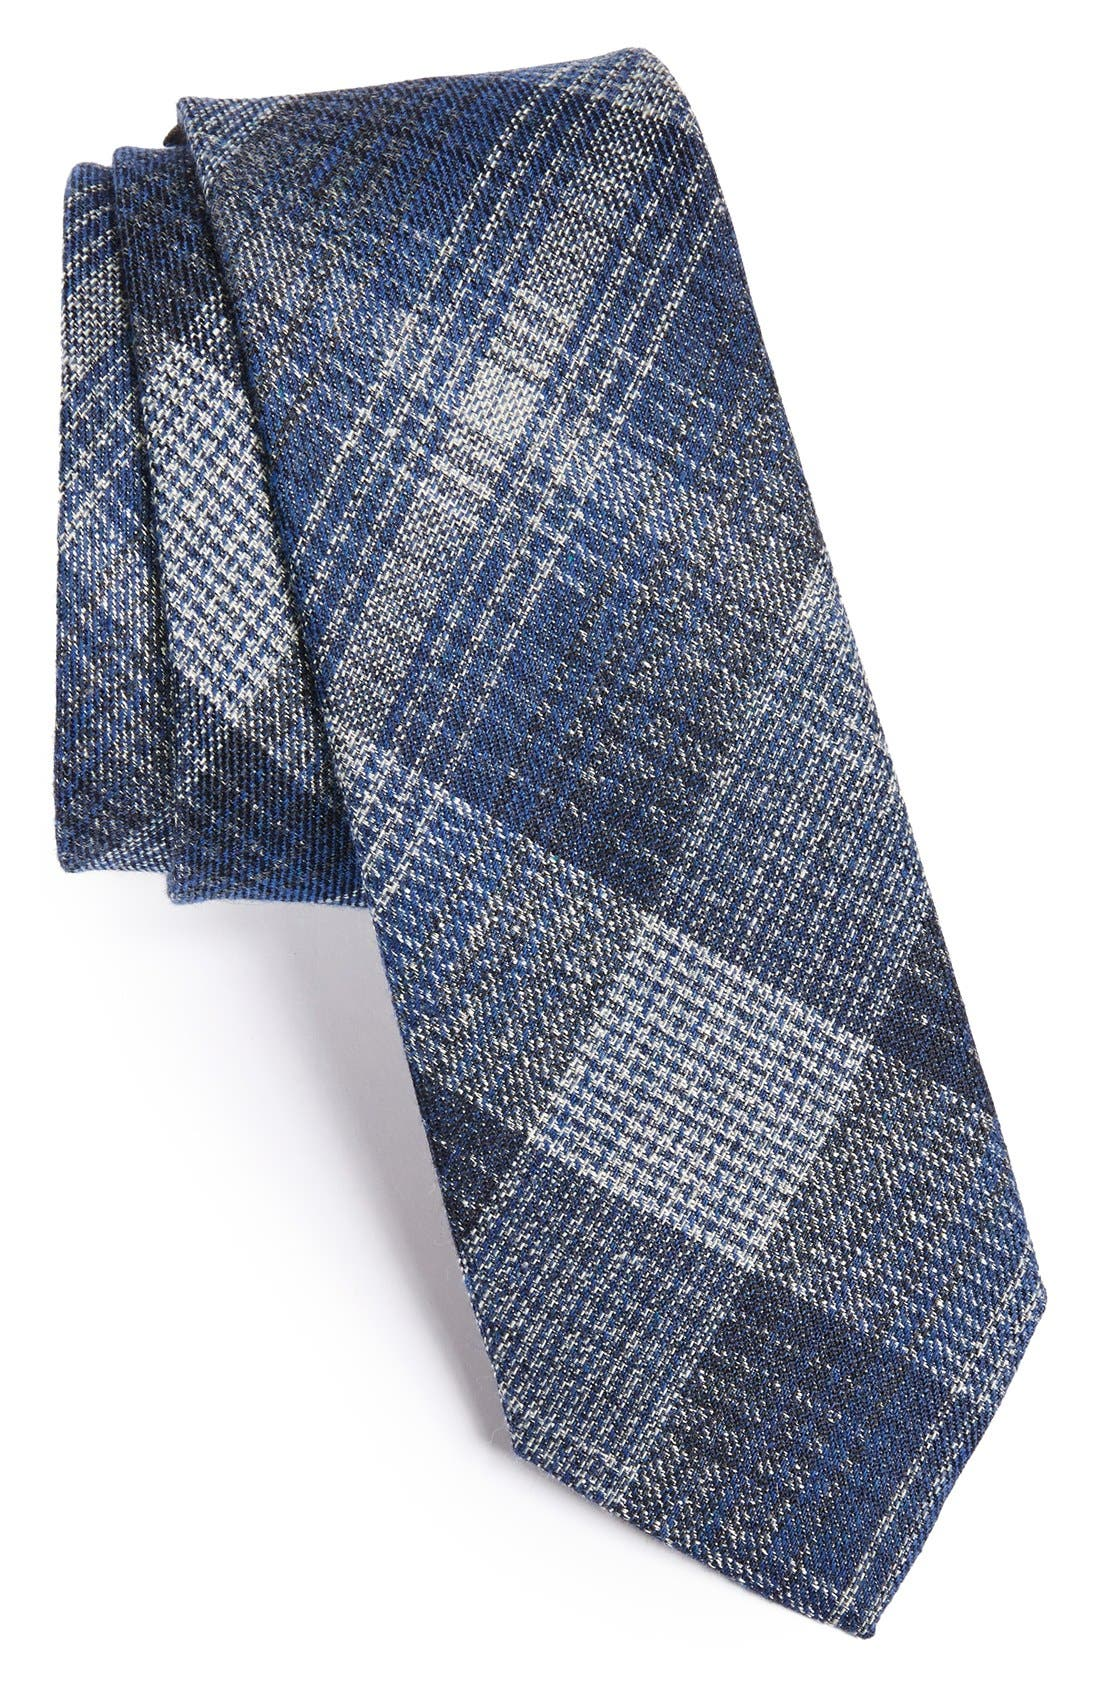 Alternate Image 1 Selected - John Varvatos Collection Woven Silk & Cotton Tie